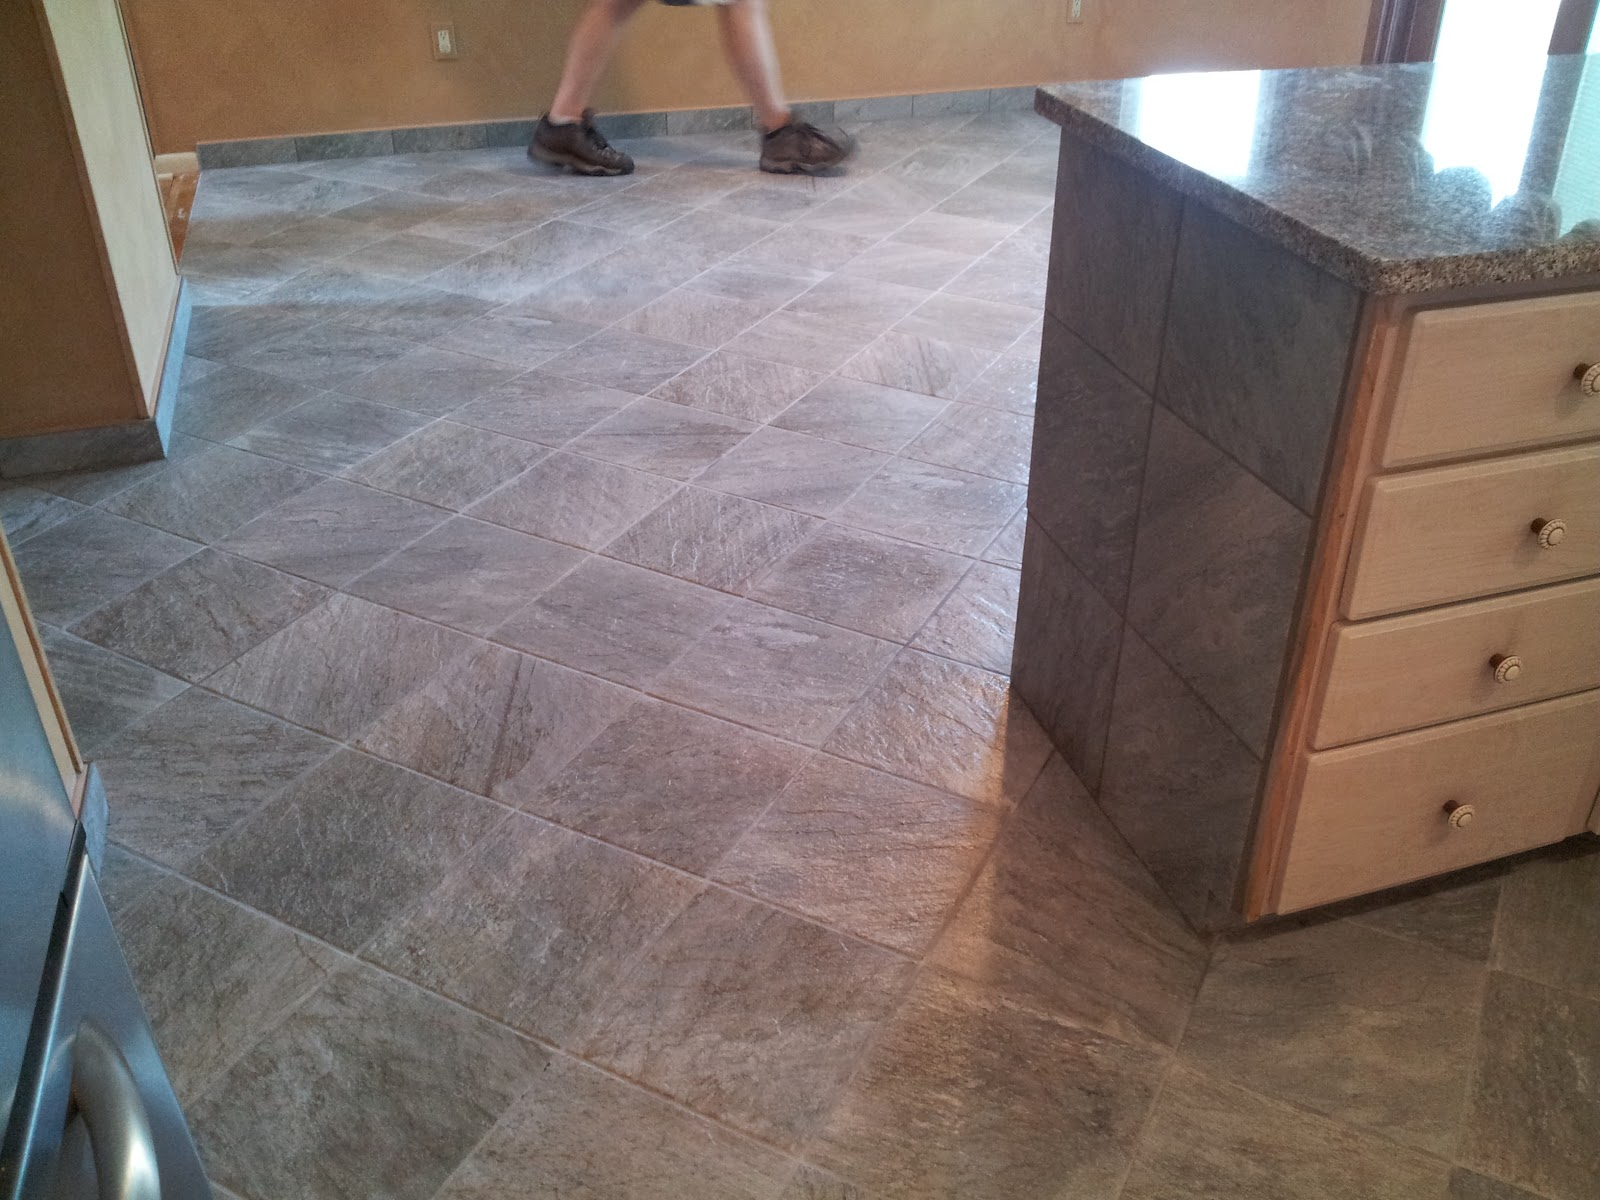 Floor Installation Photos: Slate-Looking Porcelain Tile In